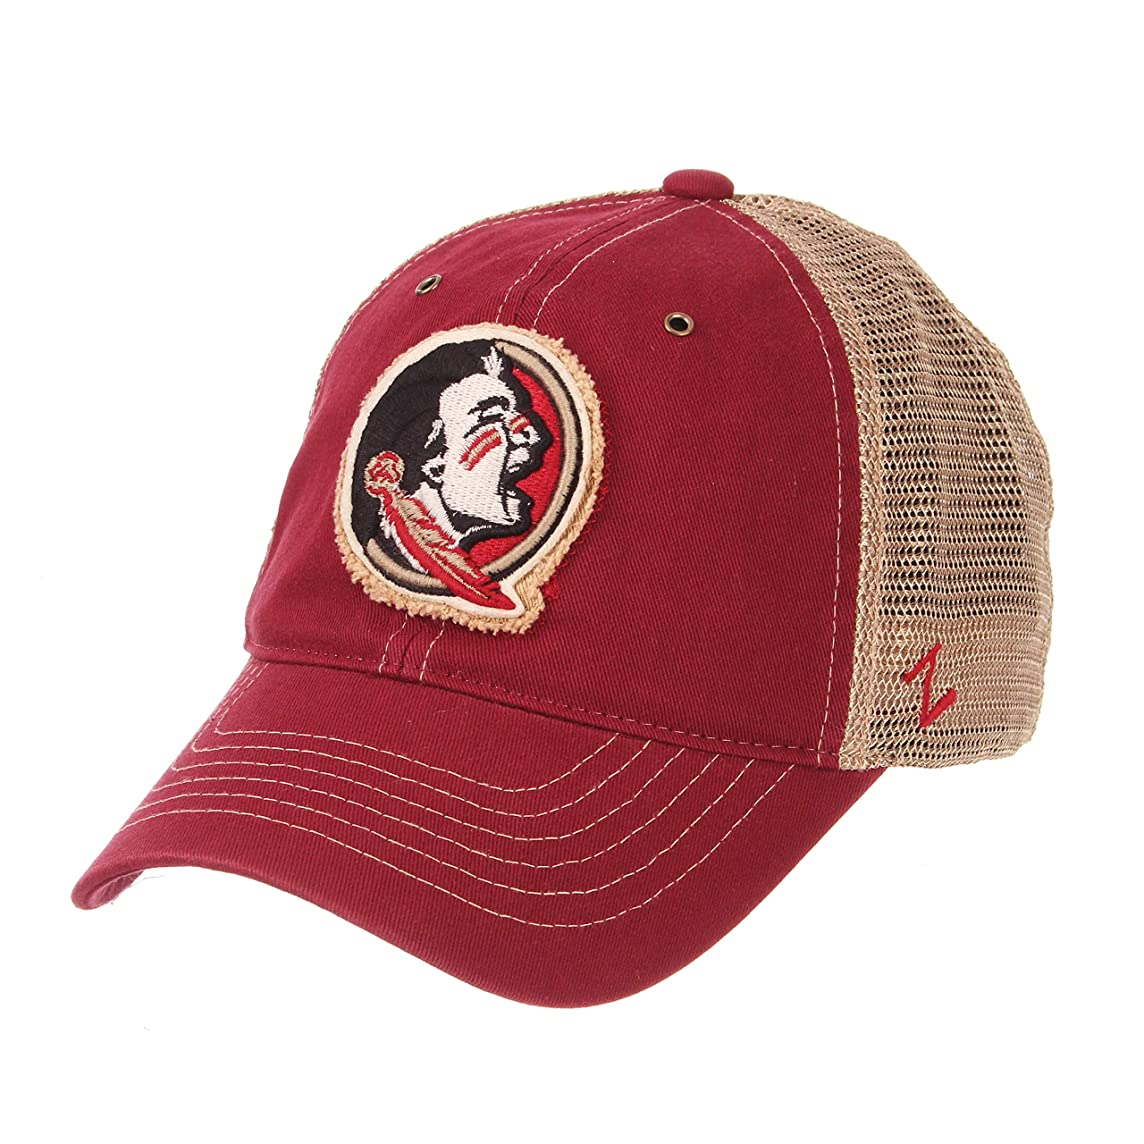 Zephyr Florida State Univeristy FSU Red Seminoles Tatter Mesh Trucker Mens/Boys Best Baseball Hat Cap Size Adjustable